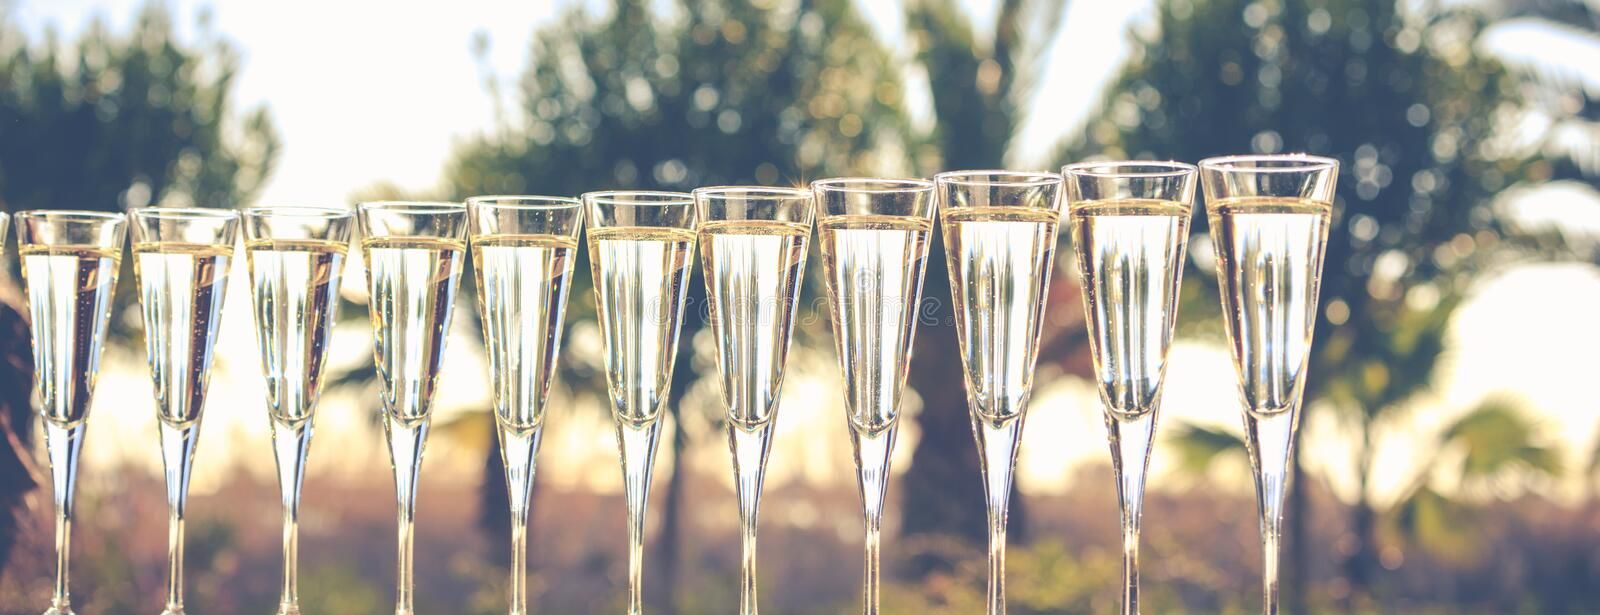 Many glasses of champagne or prosecco near resort pool in a luxury hotel. Pool party. Horizontal, banner format, toned image royalty free stock image